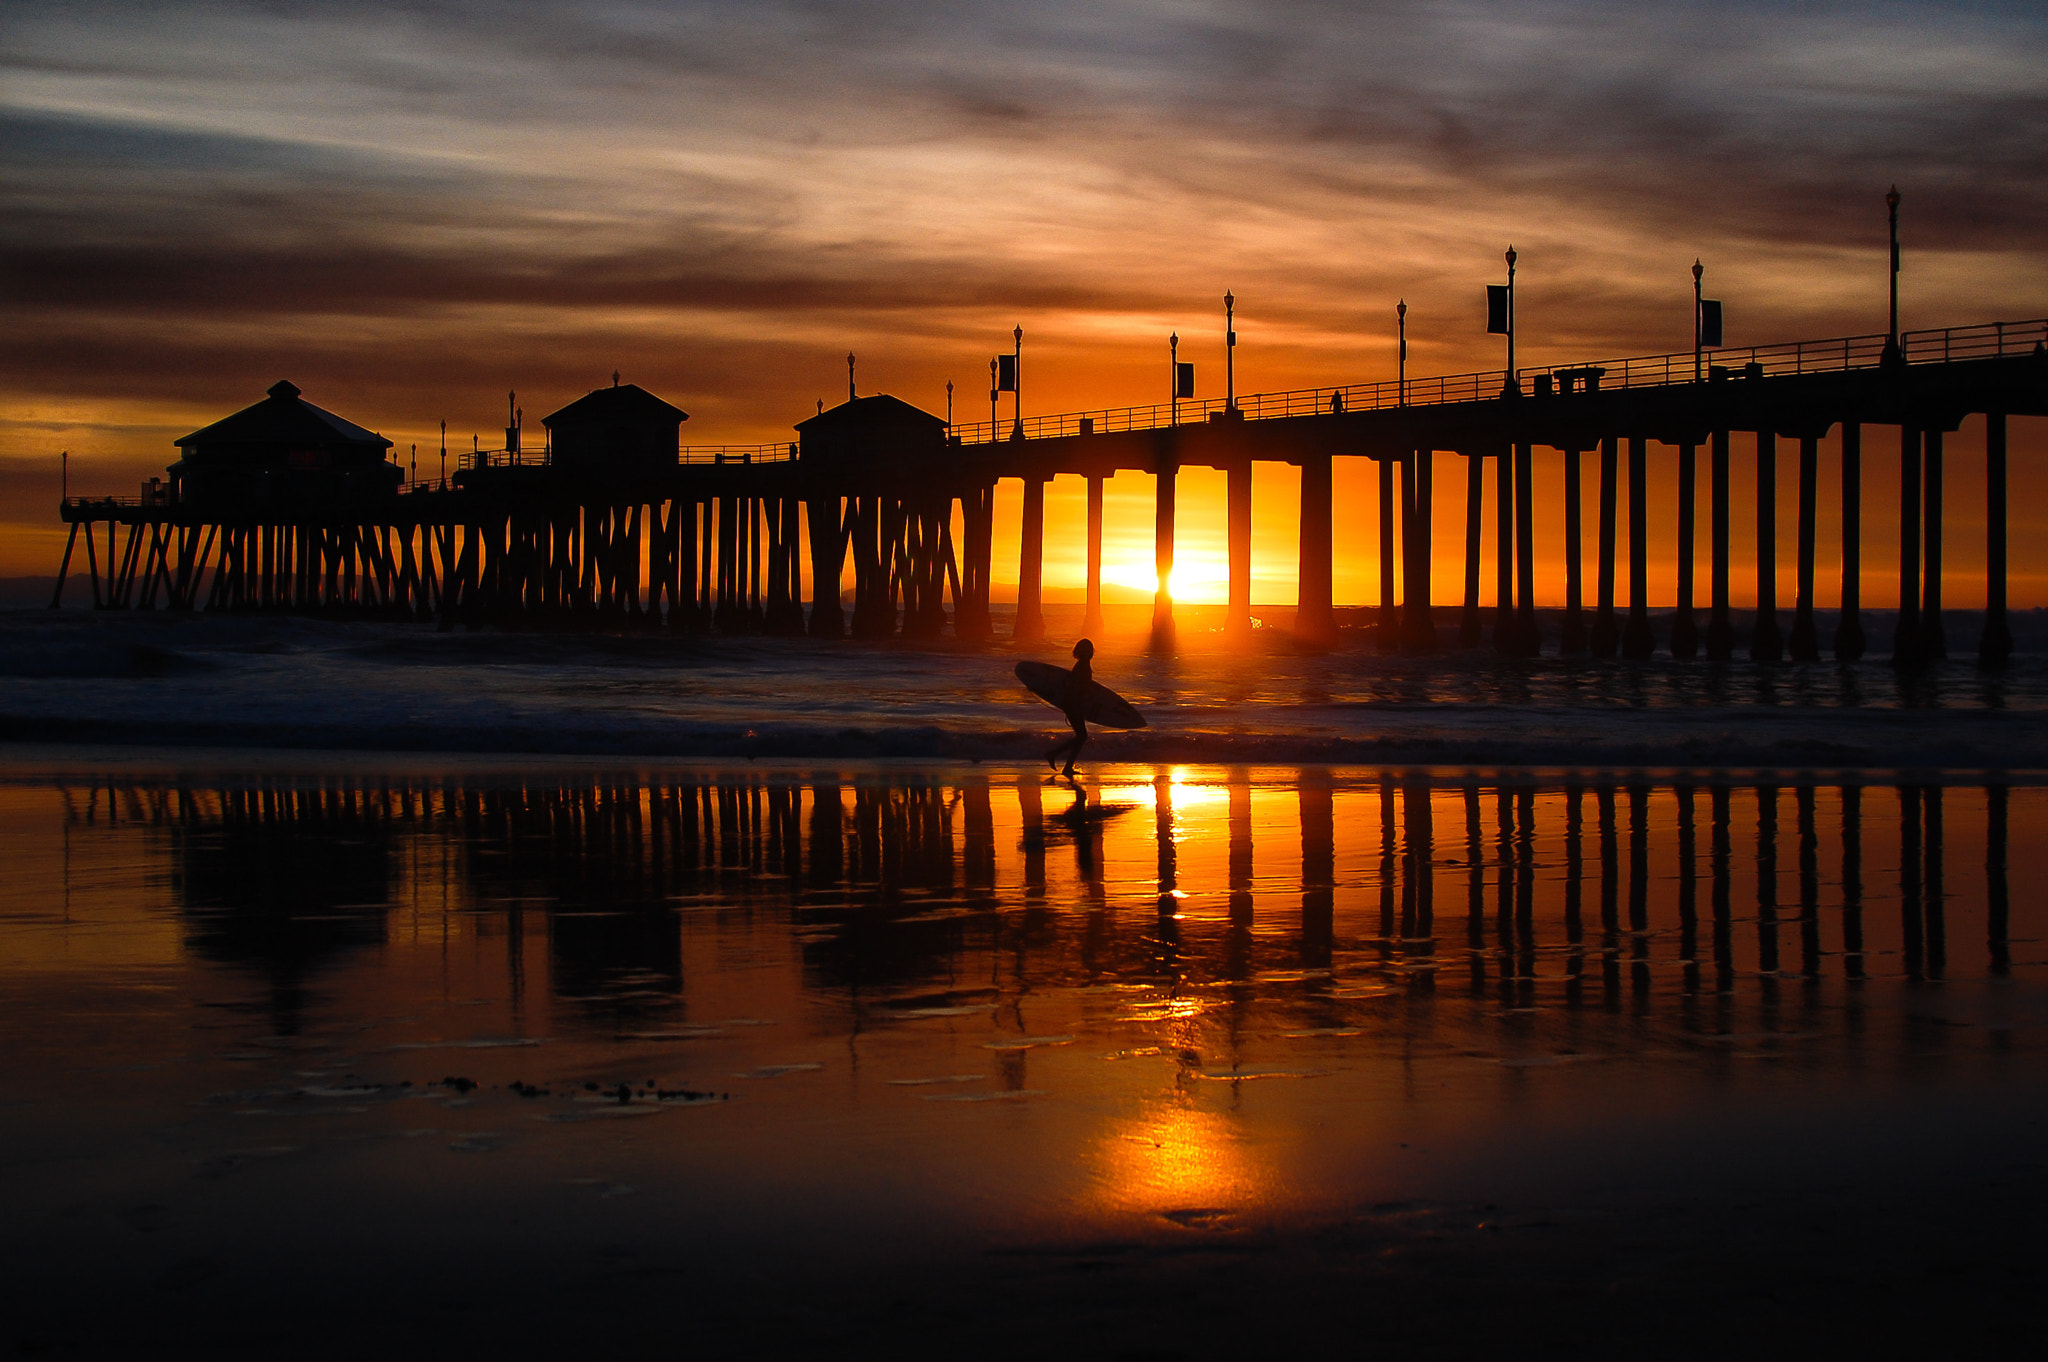 Photograph Sunset California by Mike Edwards on 500px